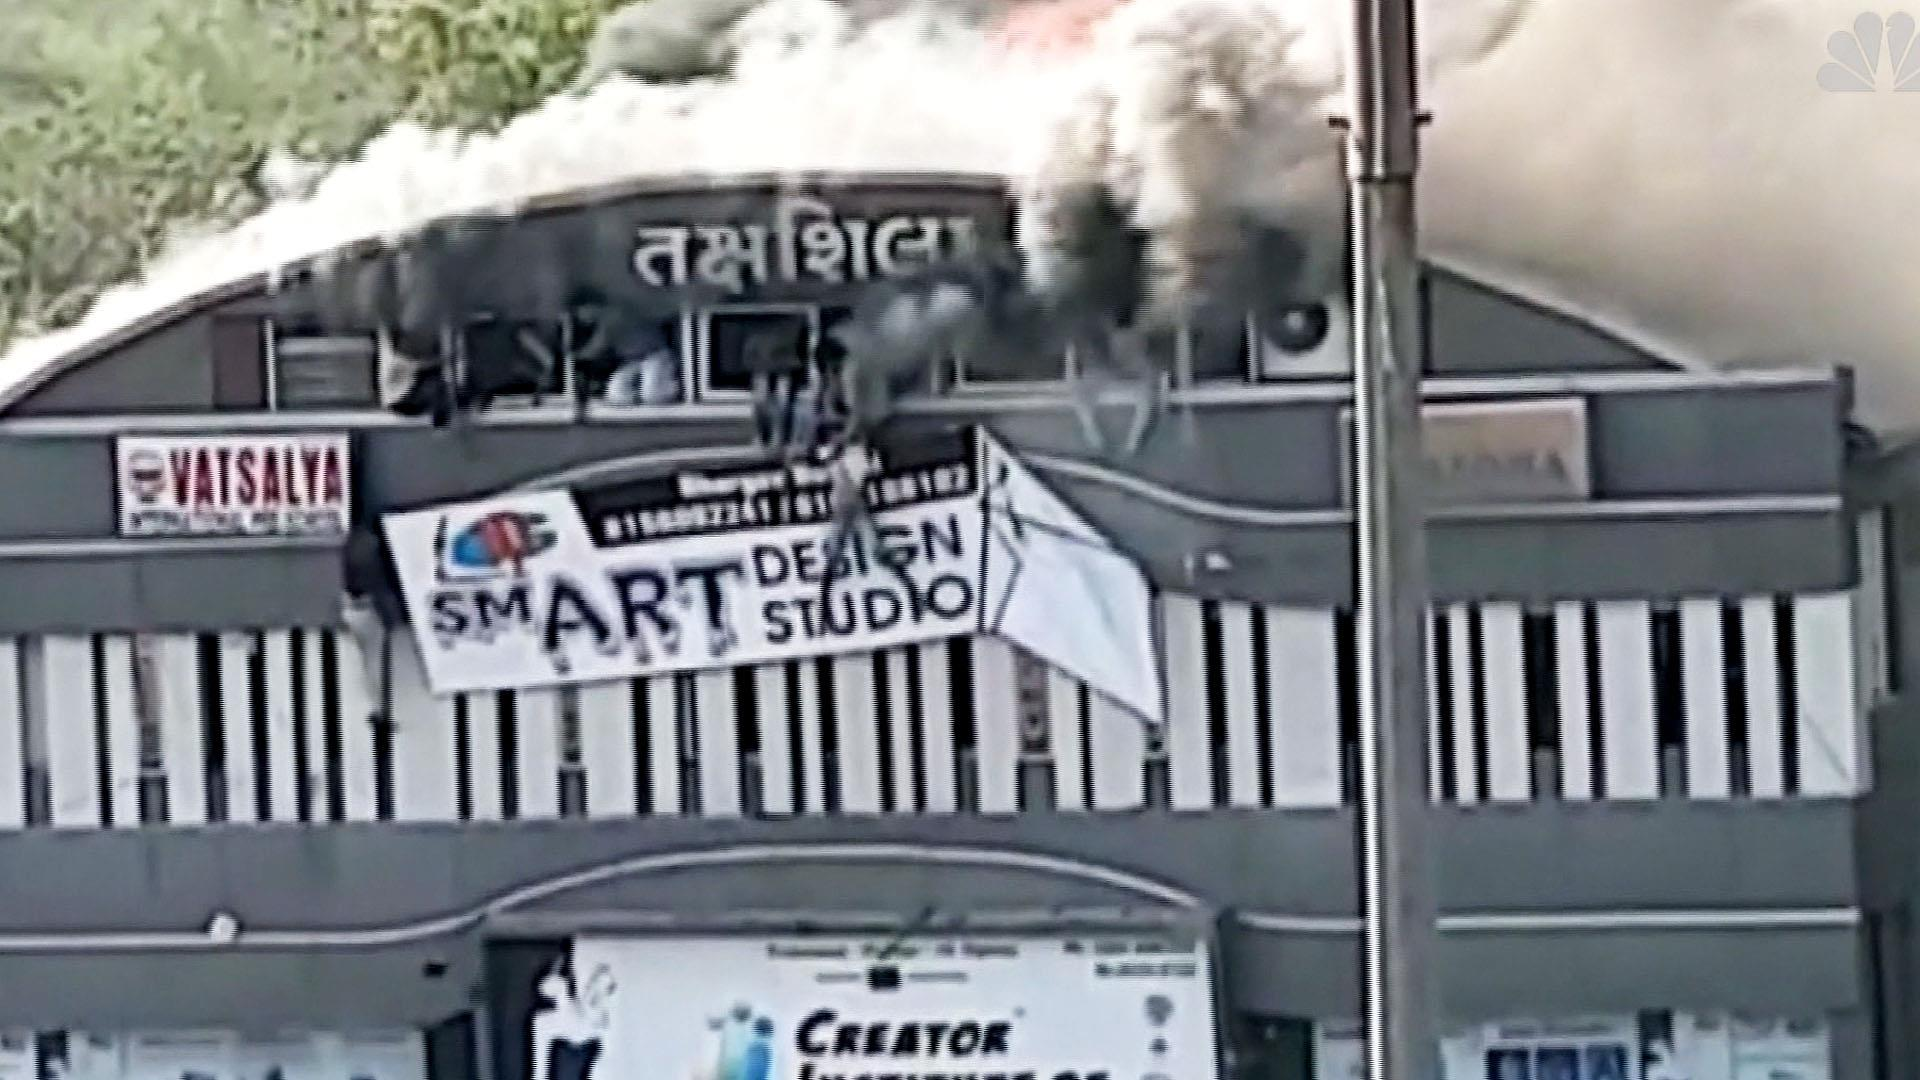 Students plunge from top floor of burning building in Surat, India